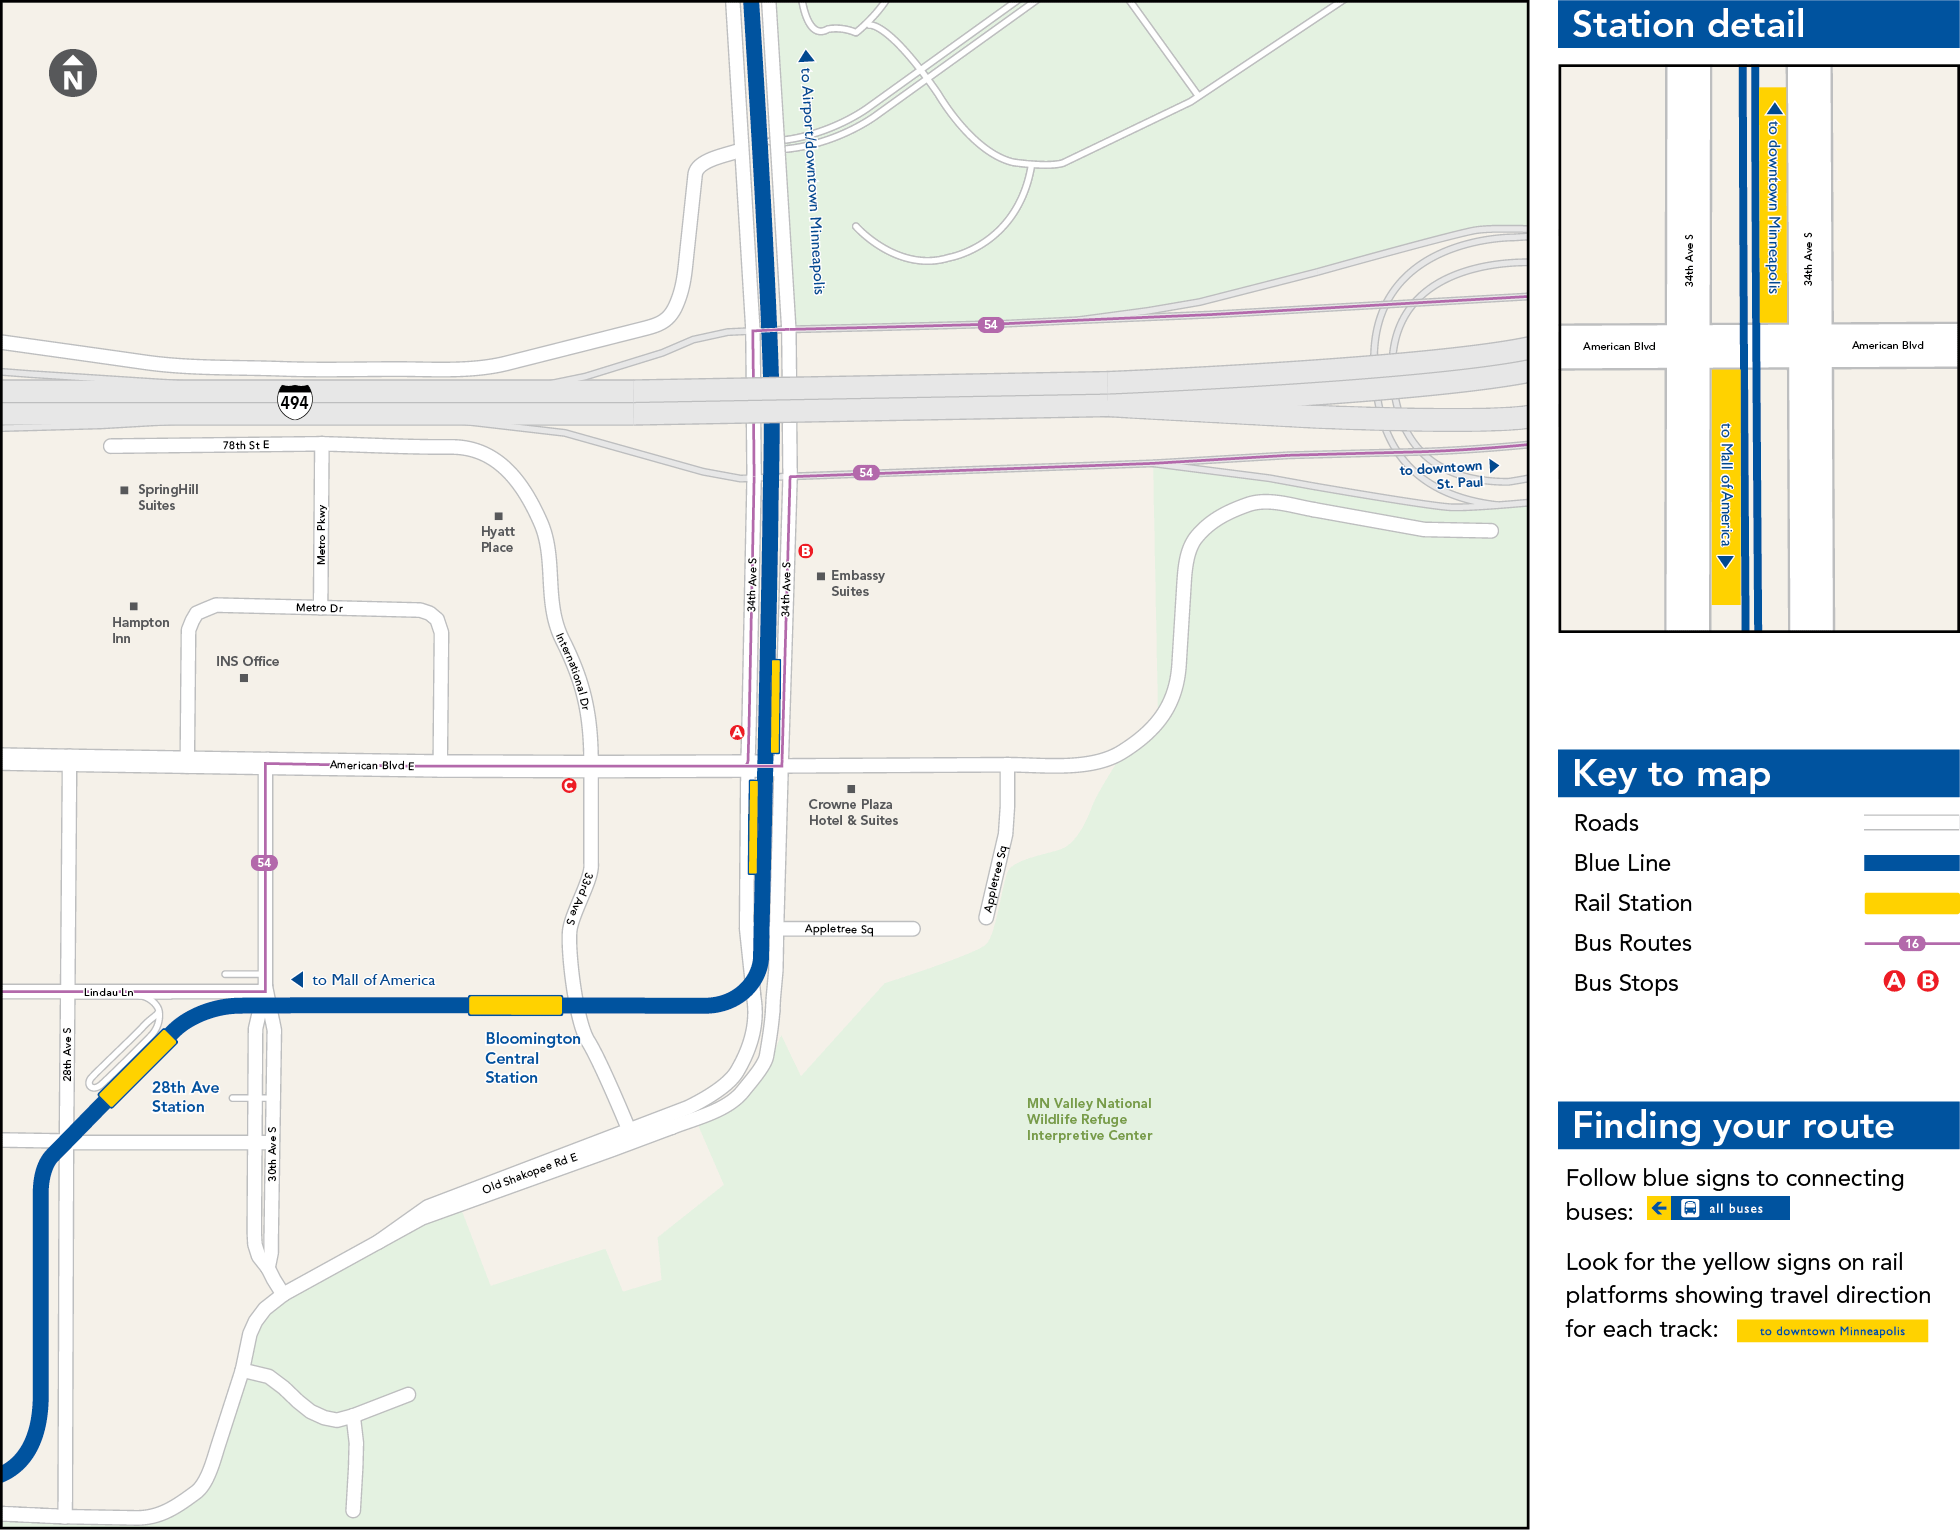 american boulevard station map